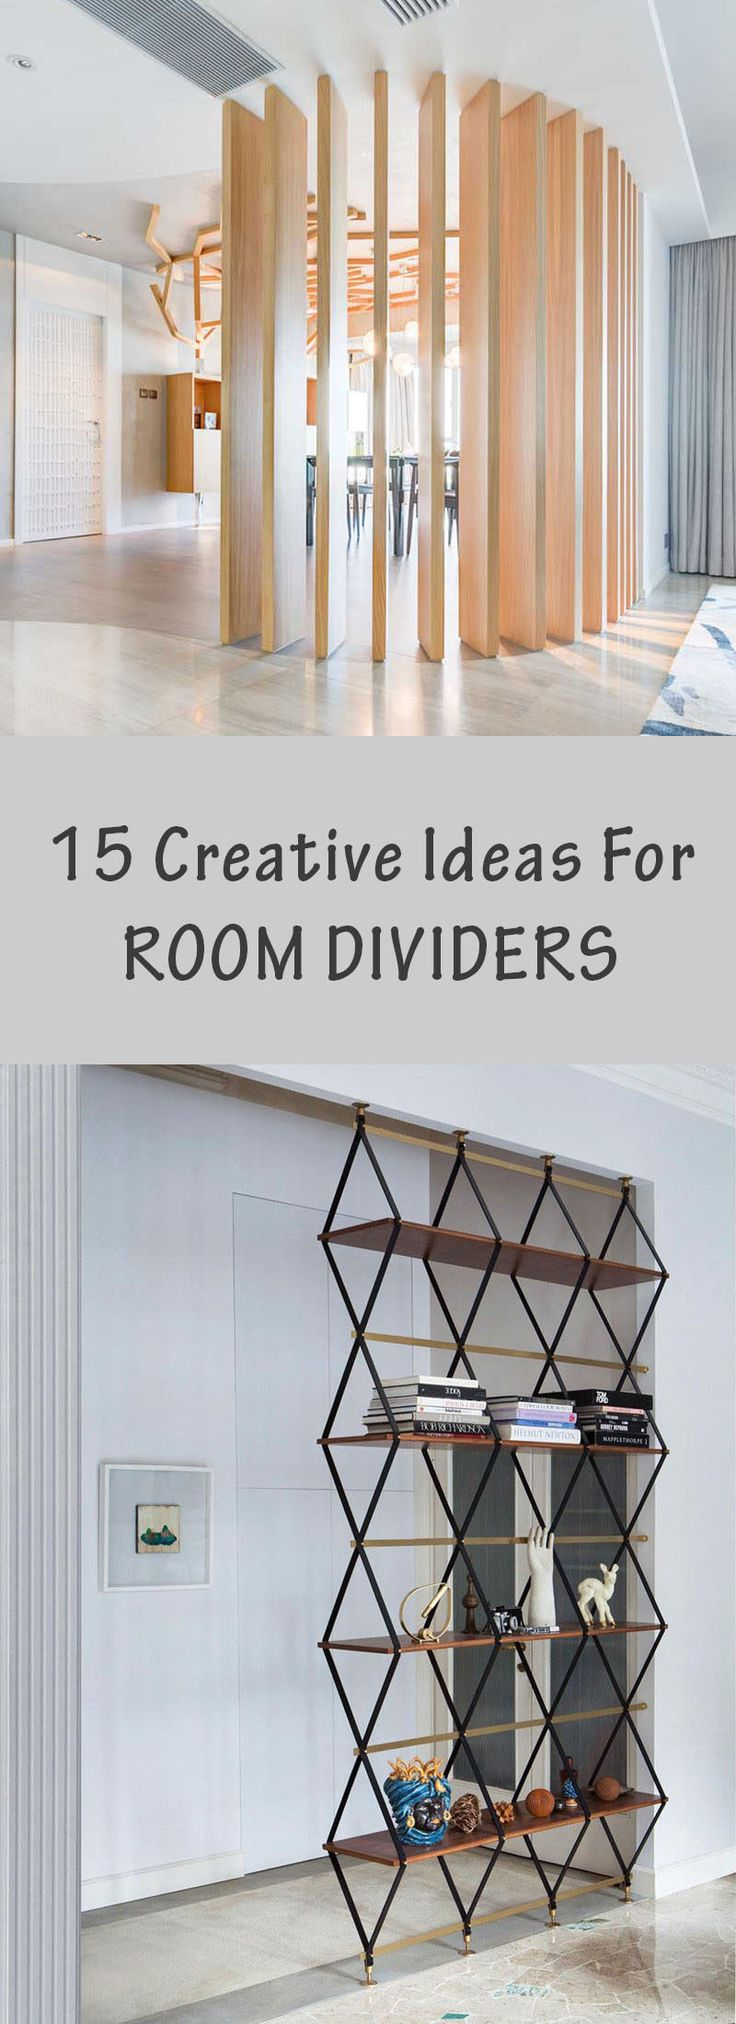 224 best Interior Design Secrets images on Pinterest | Apartment ...